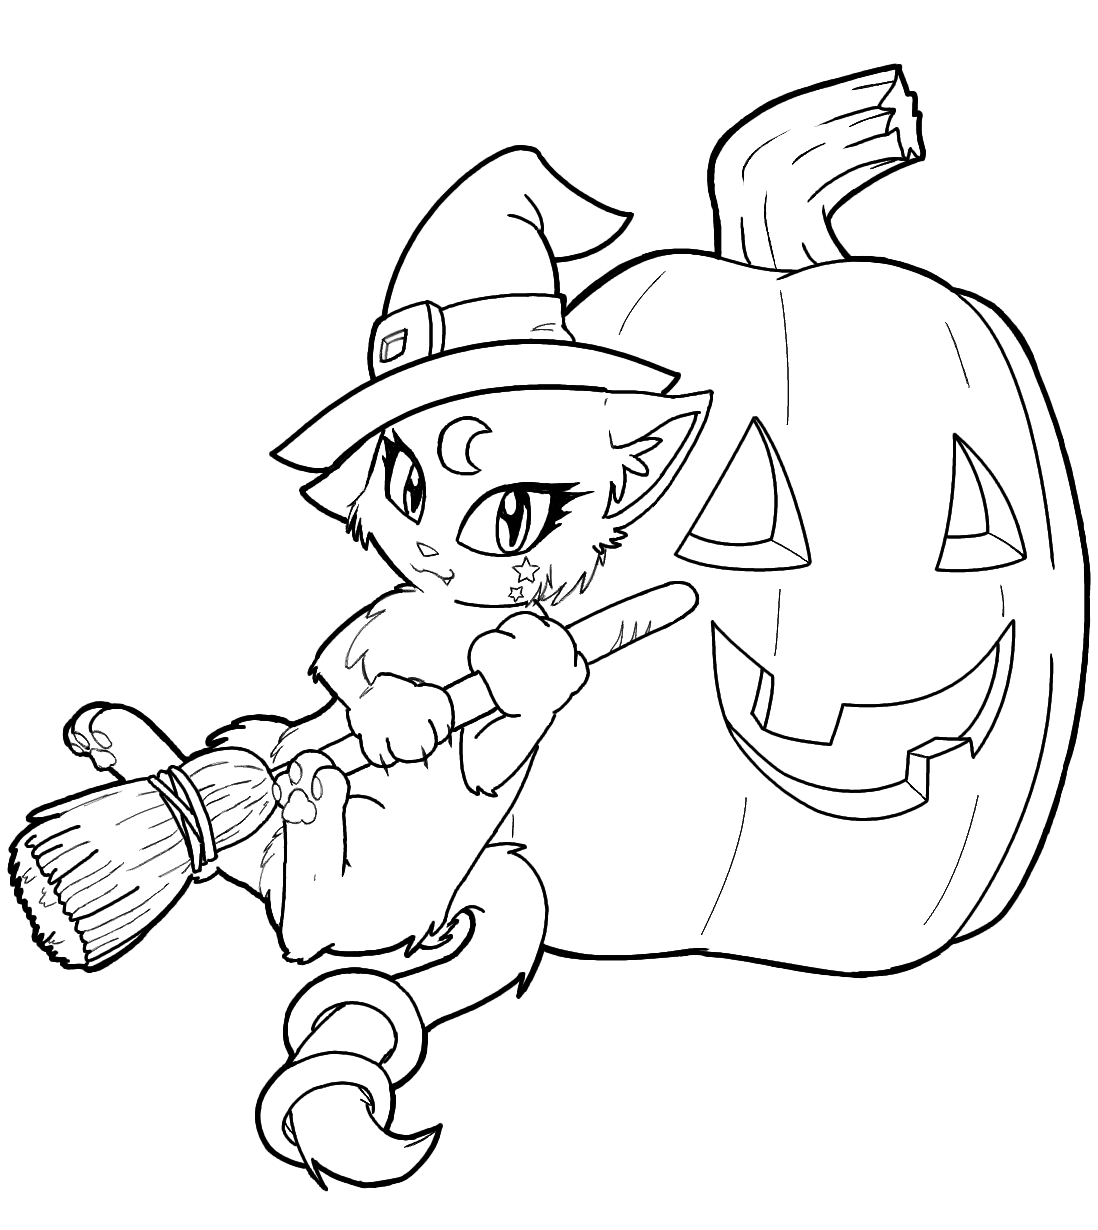 1098x1230 Free Printable Witch Coloring Pages For Kids Witches, Free